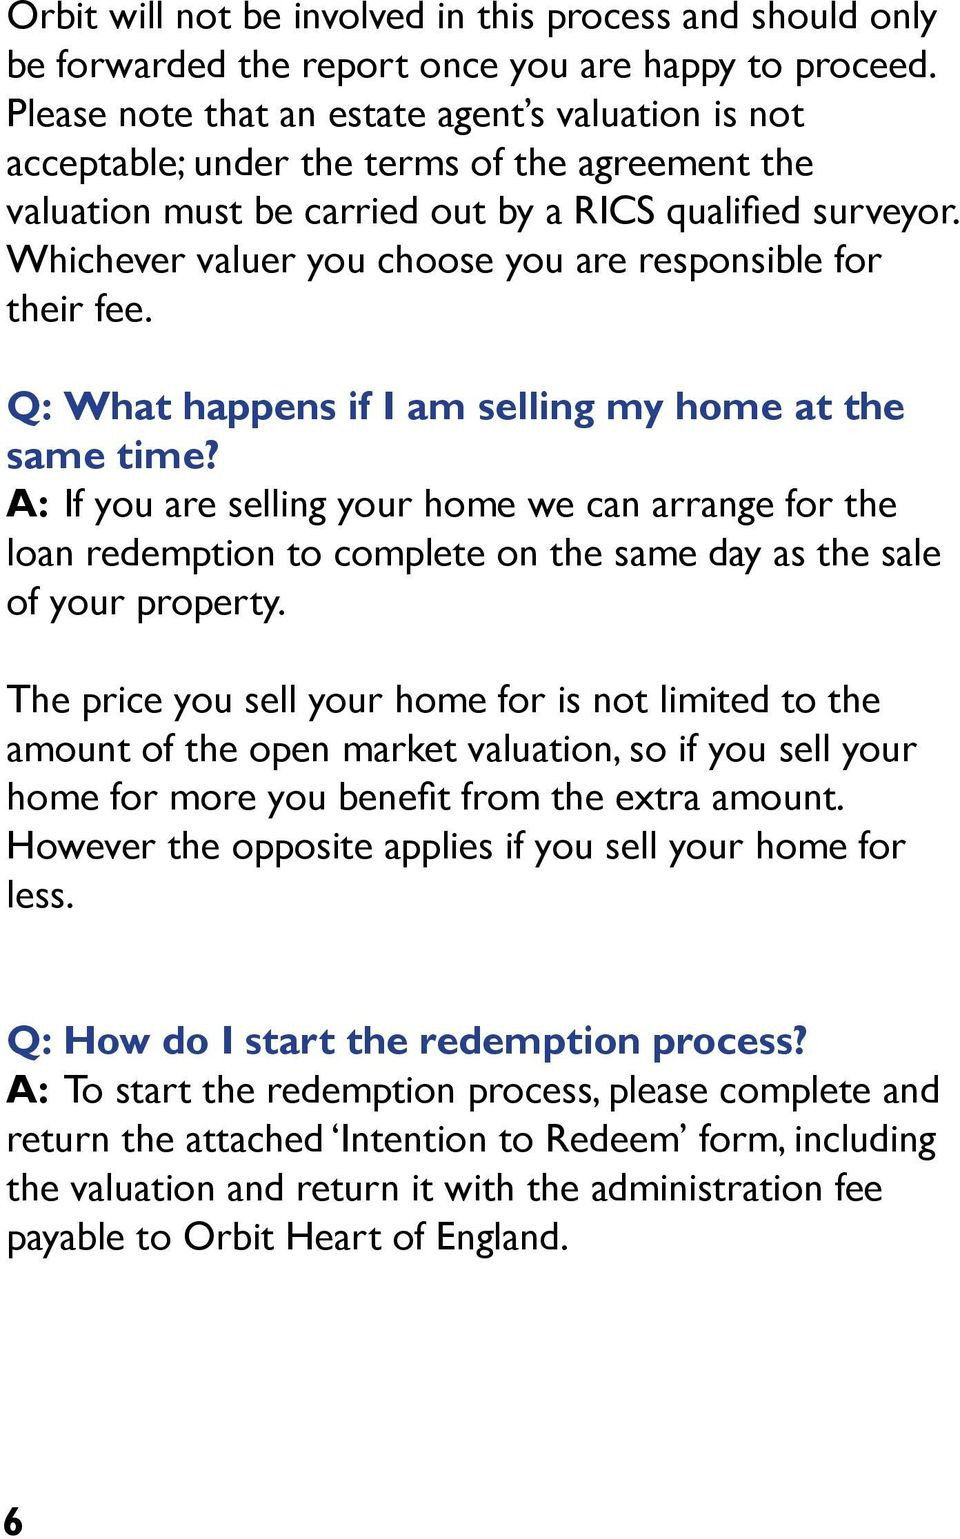 Whichever valuer you choose you are responsible for their fee. Q: What happens if I am selling my home at the same time?